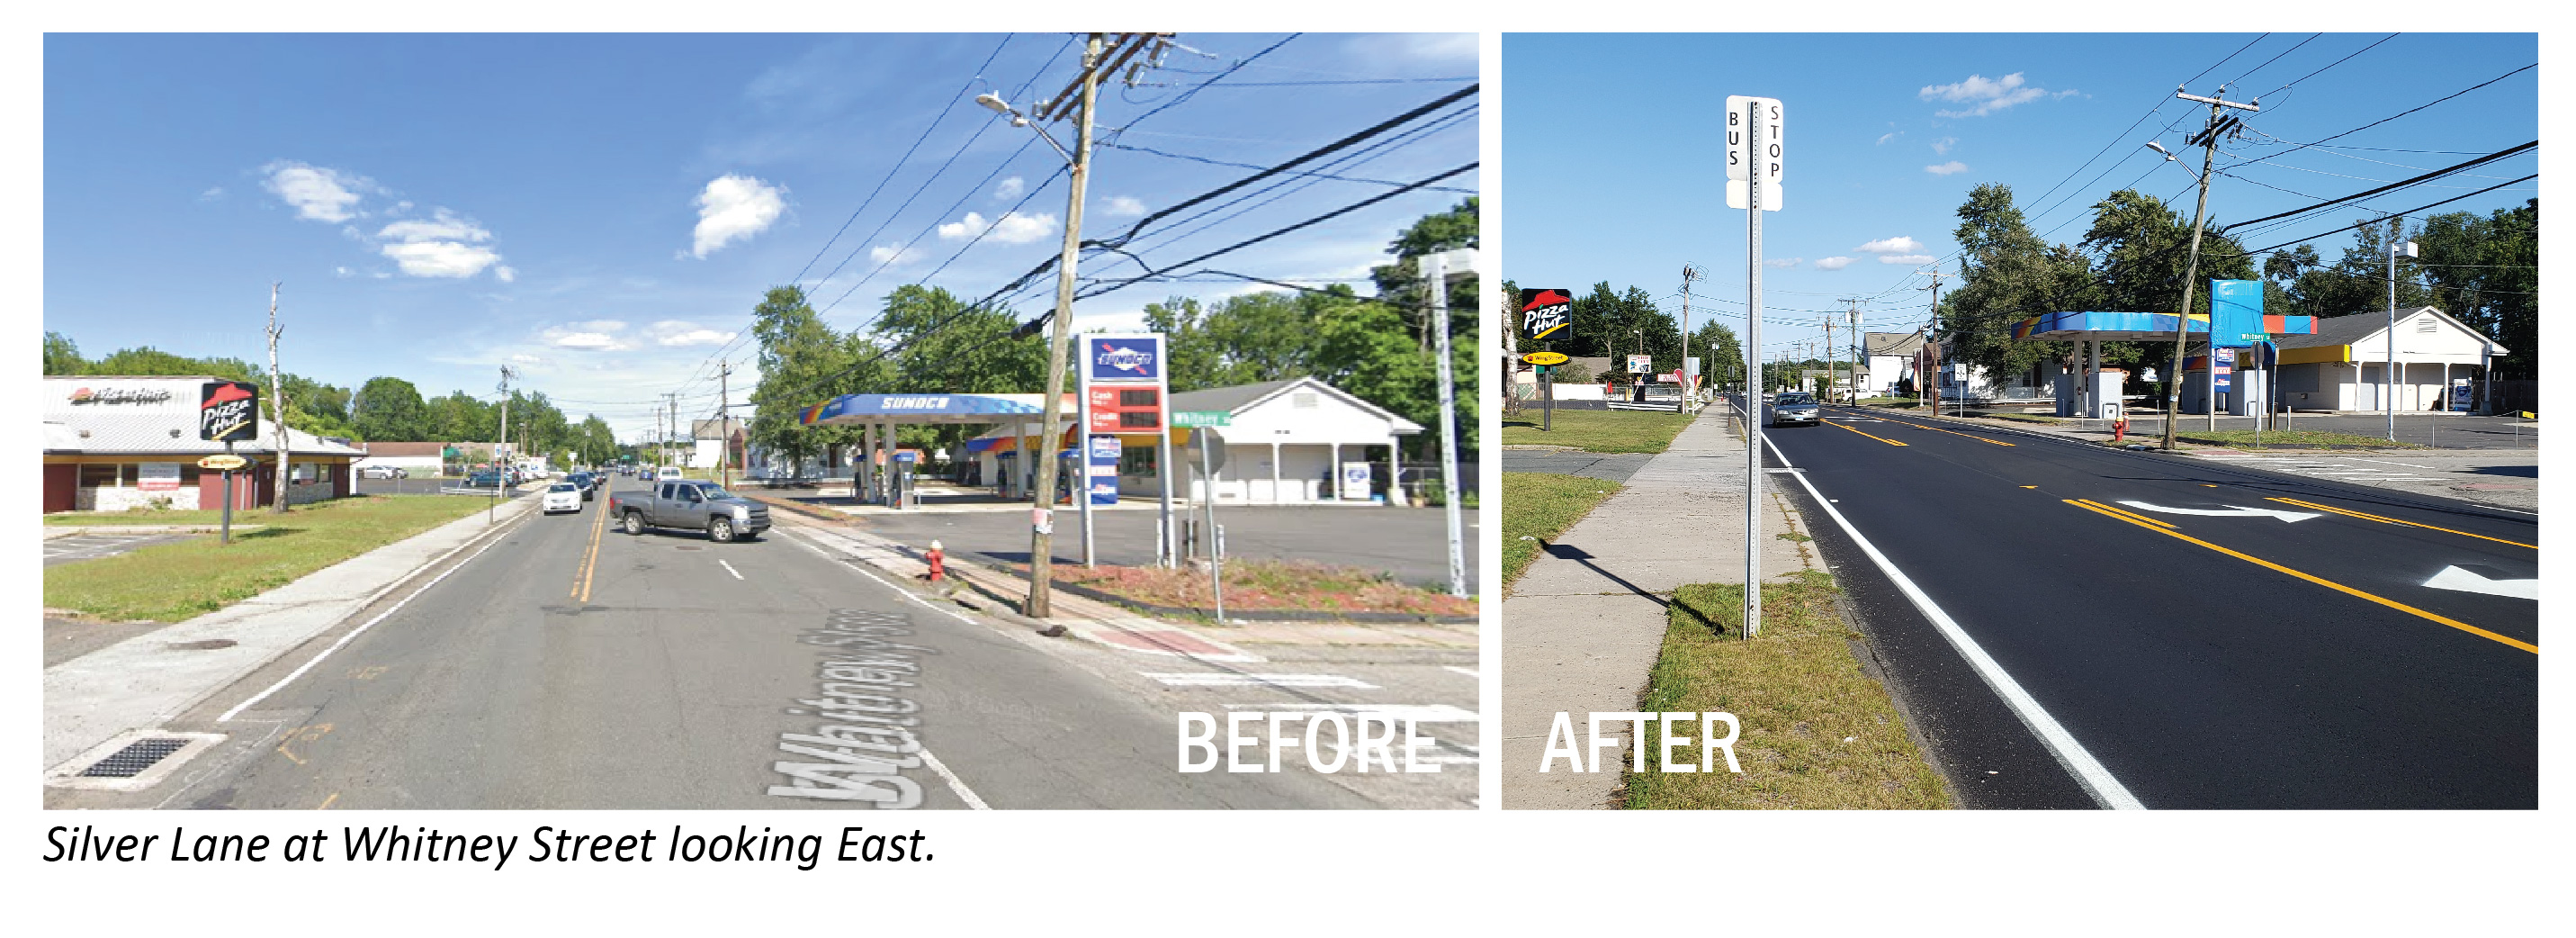 Before/After image at Whitney Street looking east.